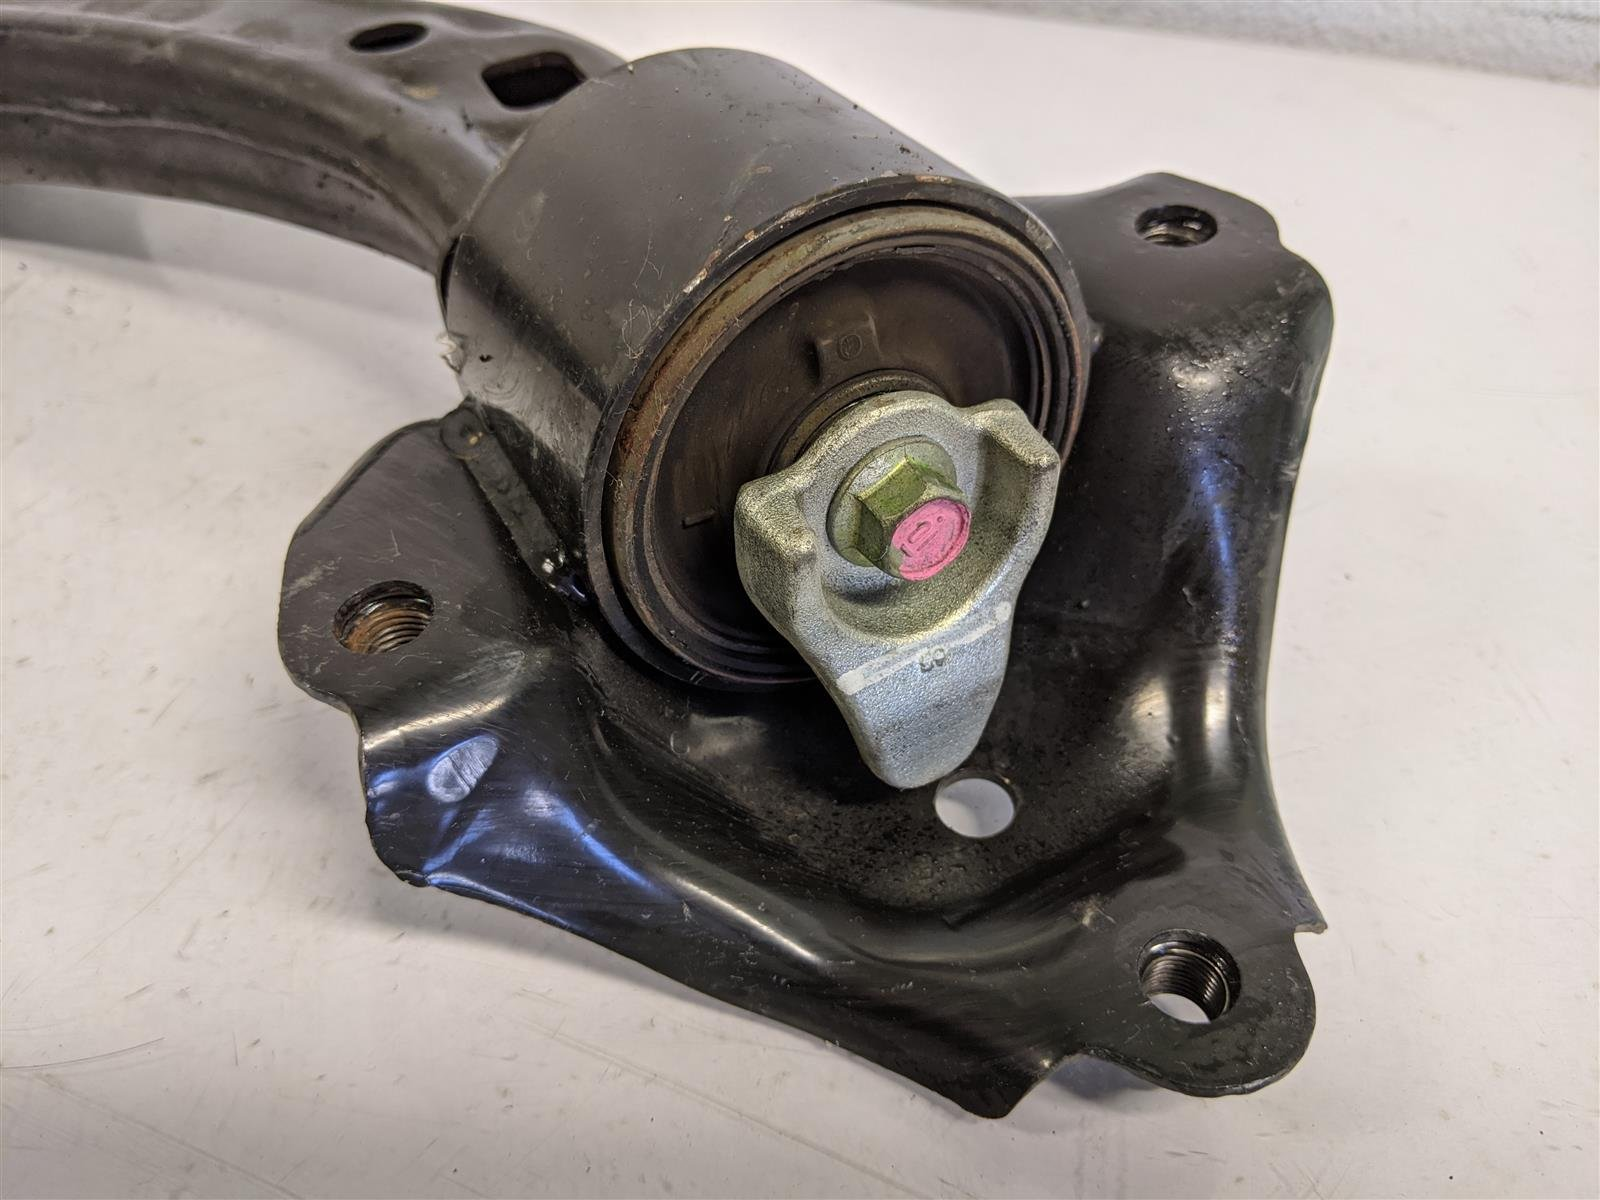 2017 Acura TLX Front Driver Lower Control Arm Replacement